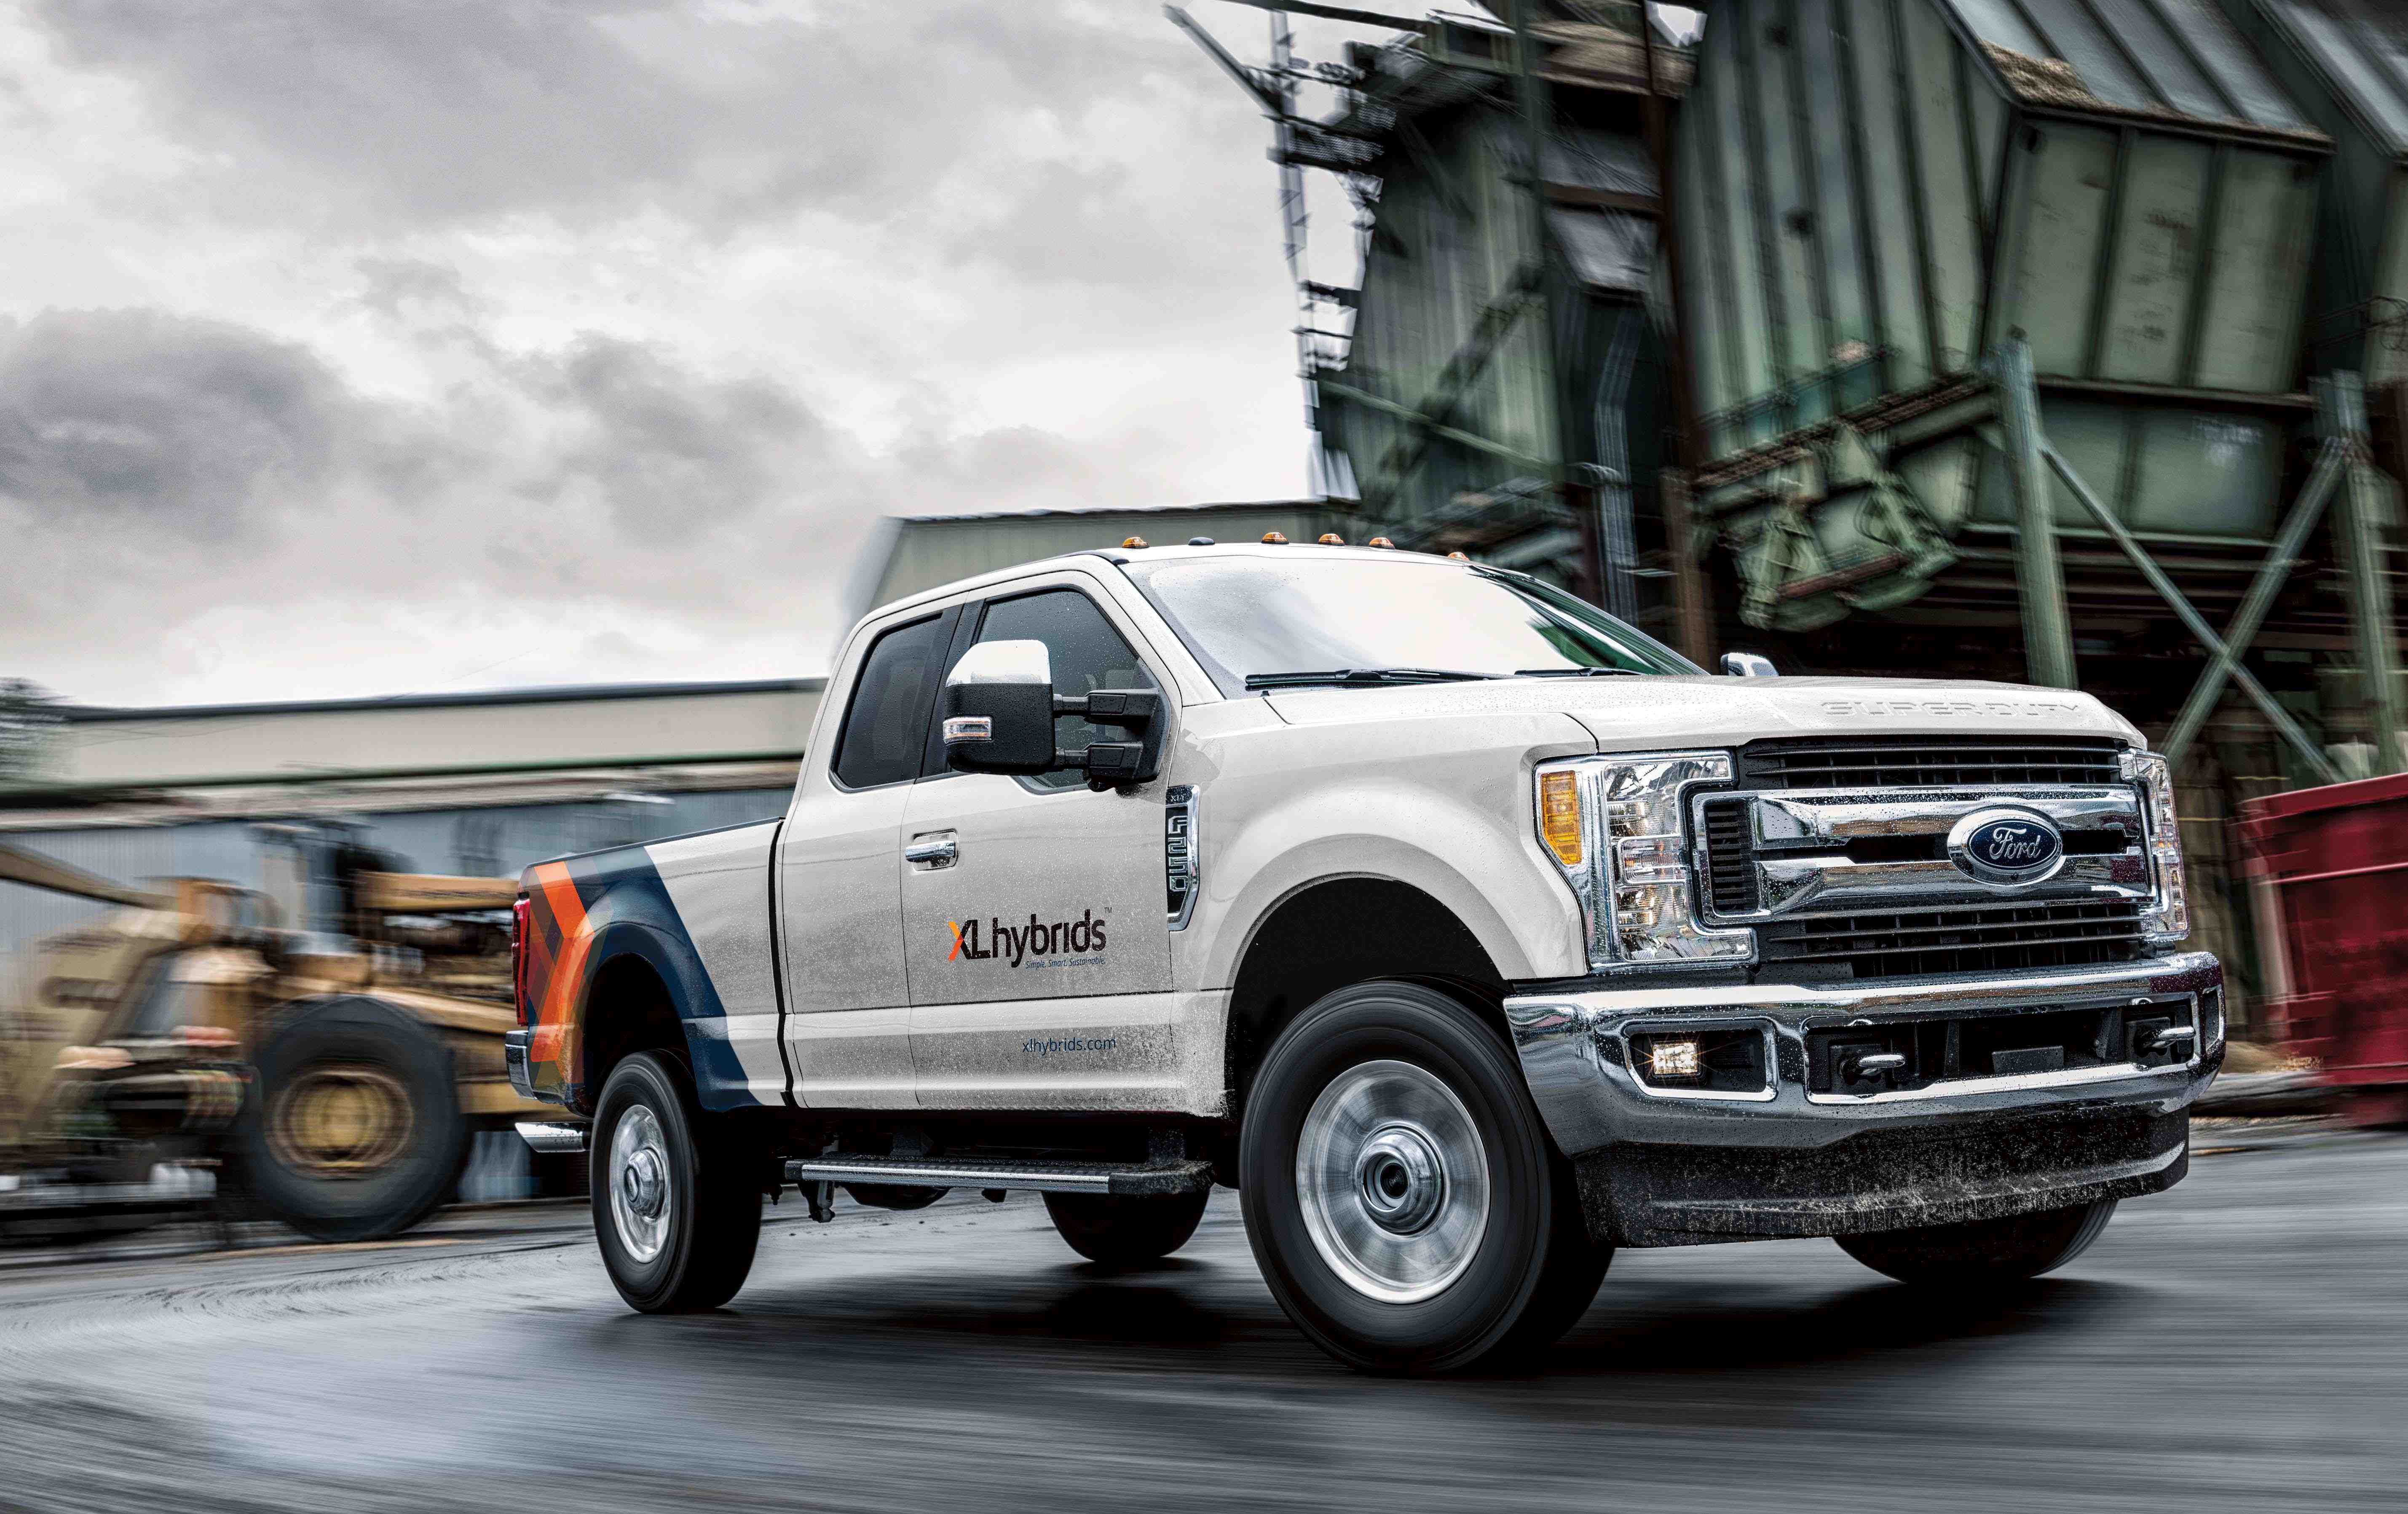 Hybrid 2018 Ford F 250 Now Available From Xl Hybrids Medium Duty